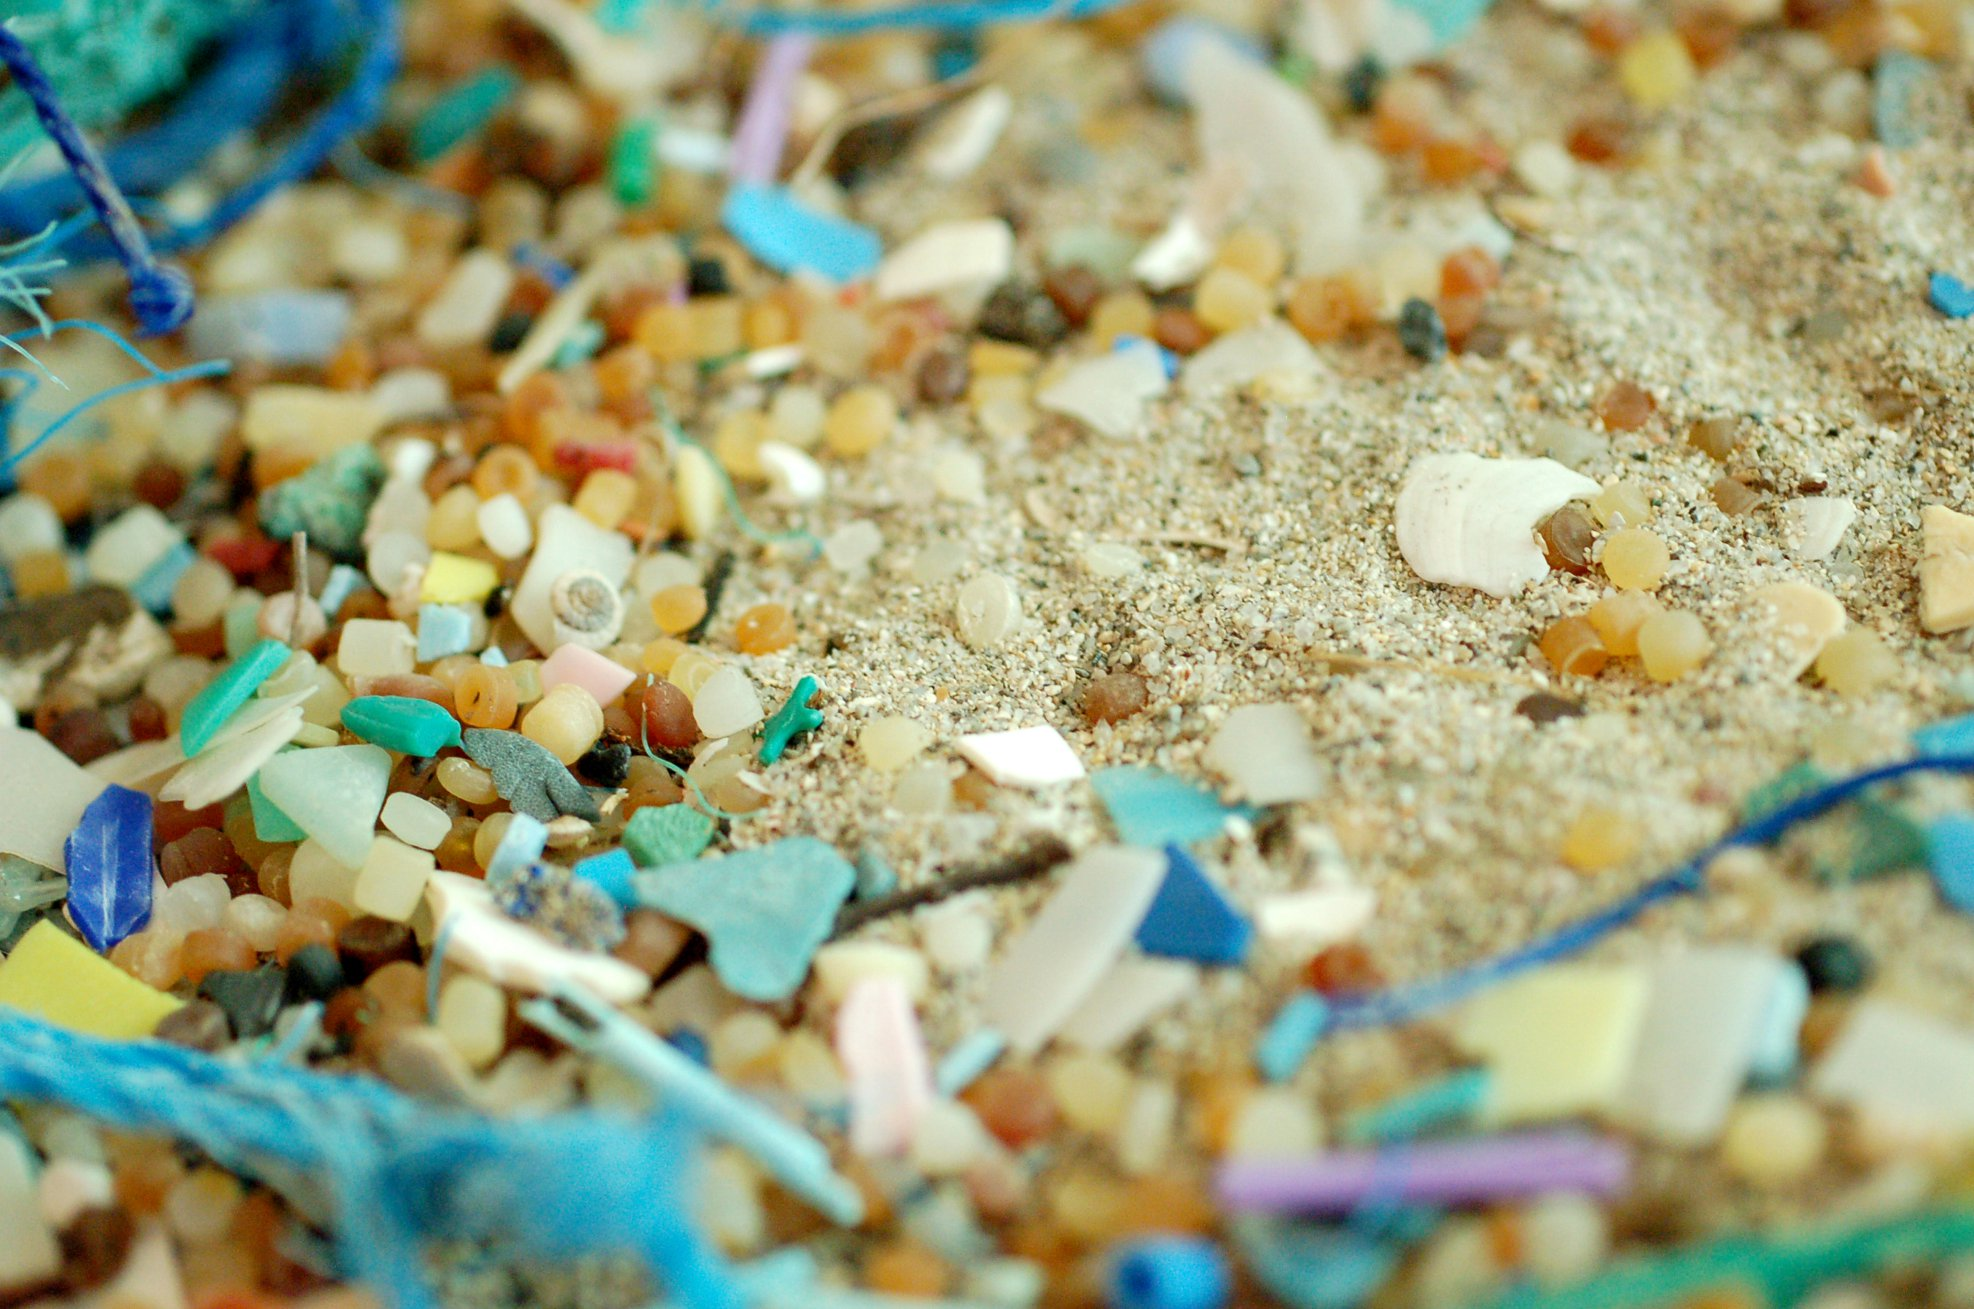 plastic on beach.jpg